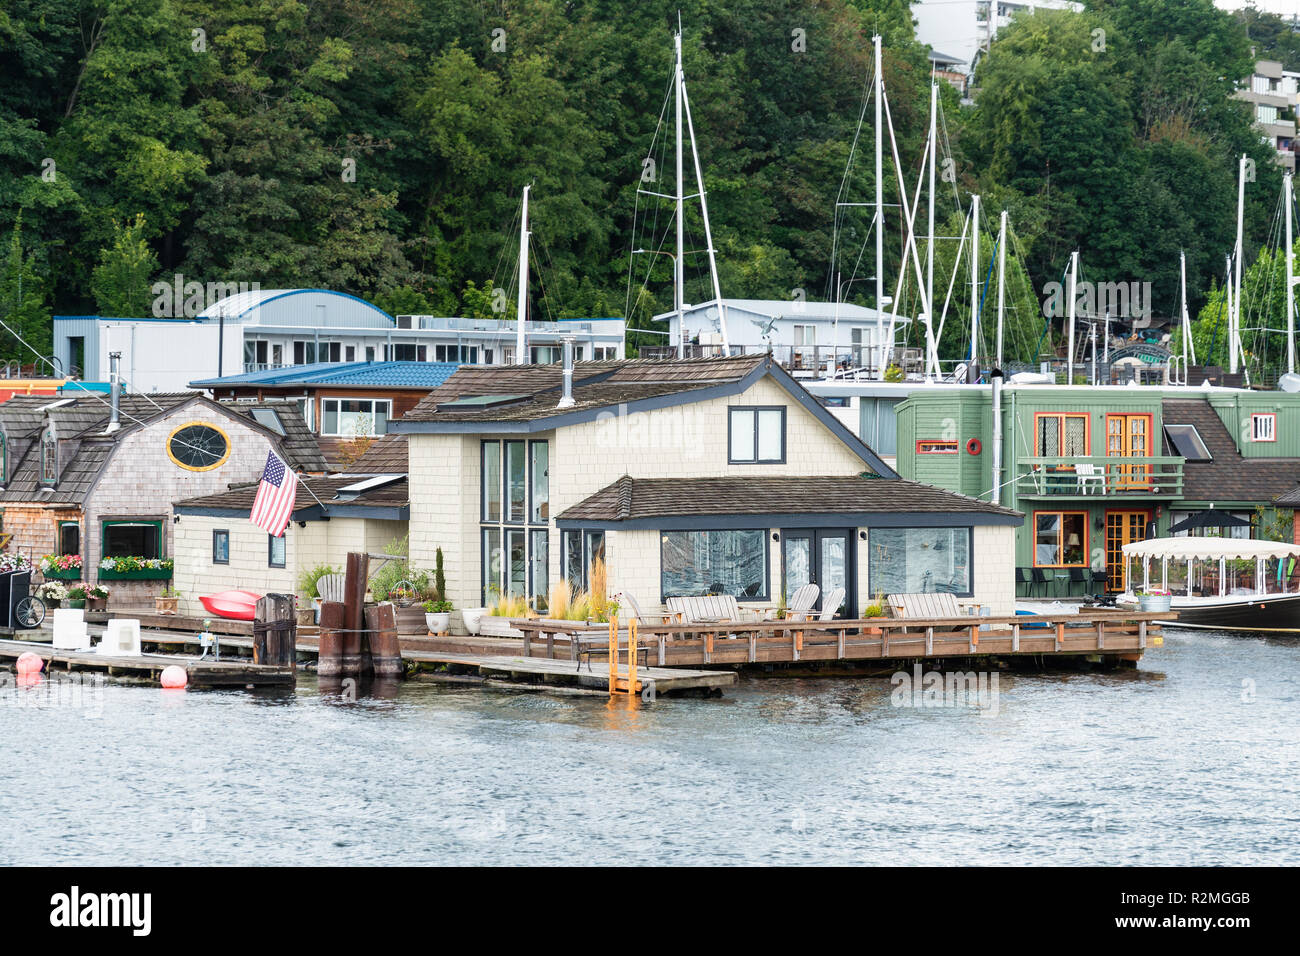 Seattle, Lake Union, film set 'Sleepless in Seattle' - Stock Image